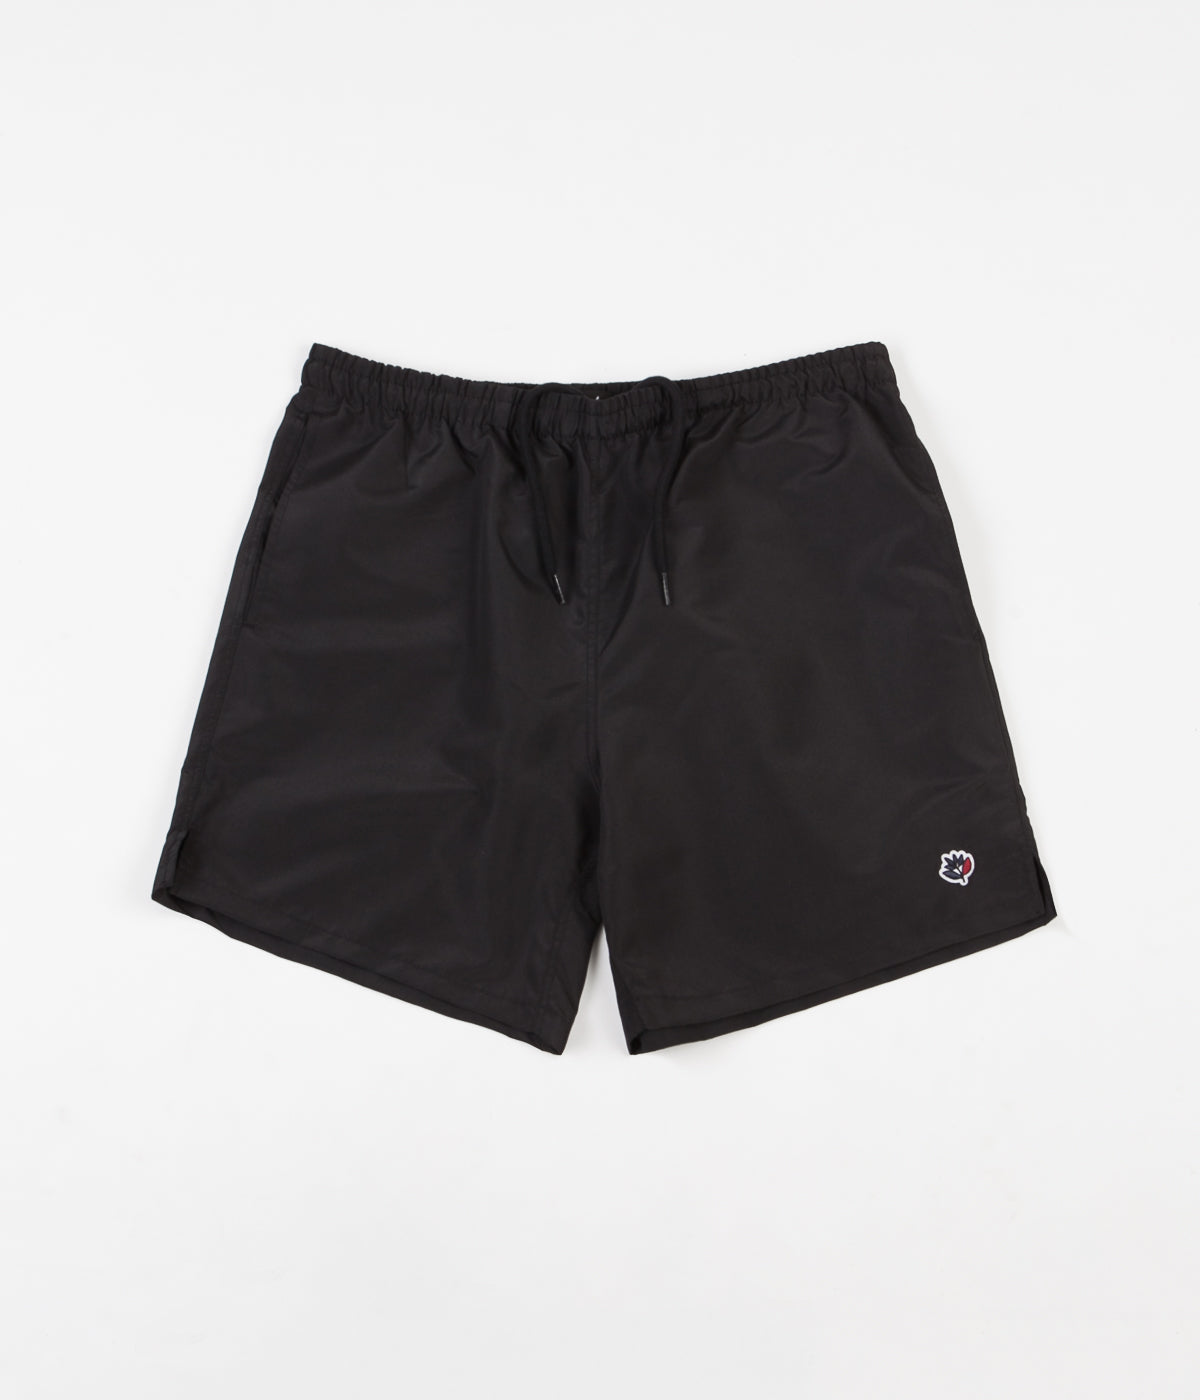 Magenta Plant Patch Shorts - Black